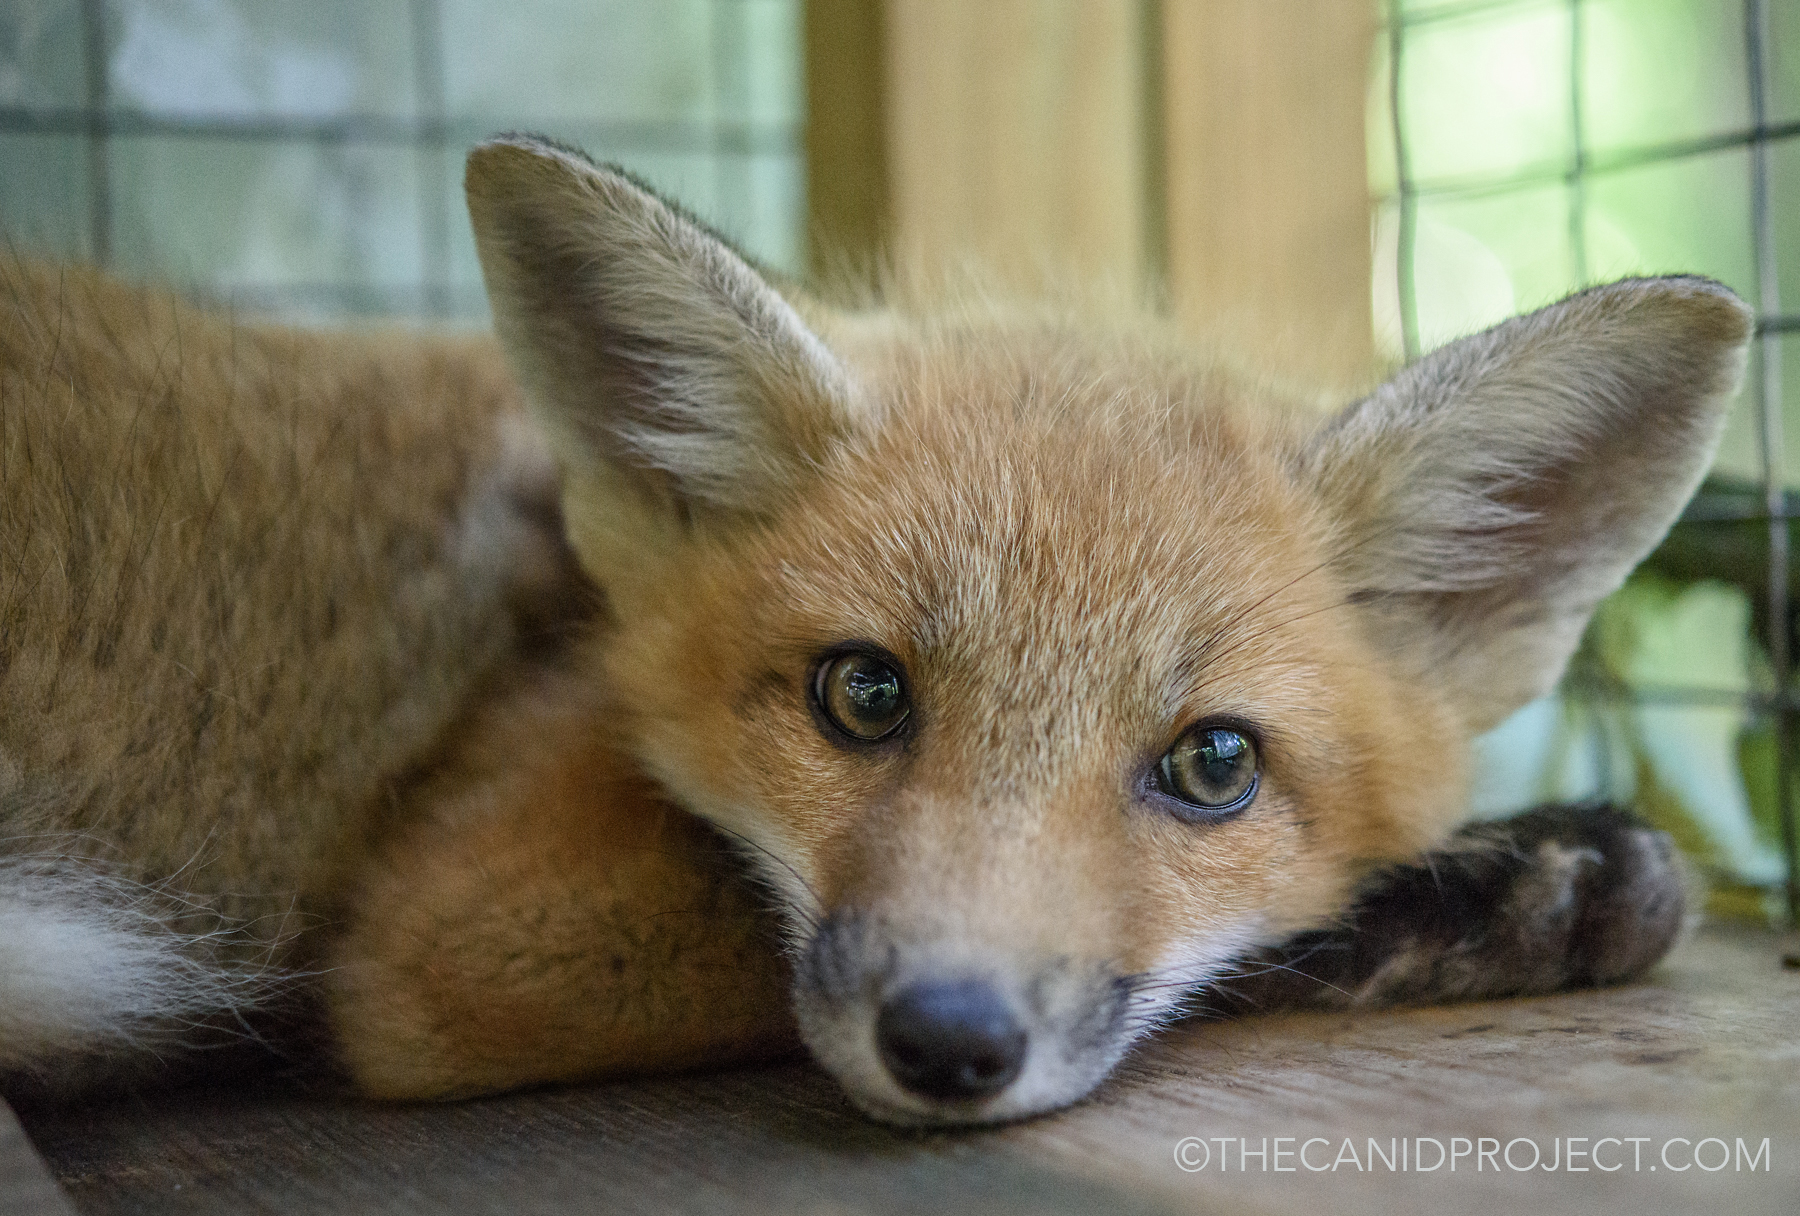 We need a new enclosure! - Please consider helping us build the new fox enclosure which is desperately needed for our young foxes. Also, in order for us to take in new orphaned or injured foxes, we must have this new enclosure!Please visit our New Enclosure Page: HERE